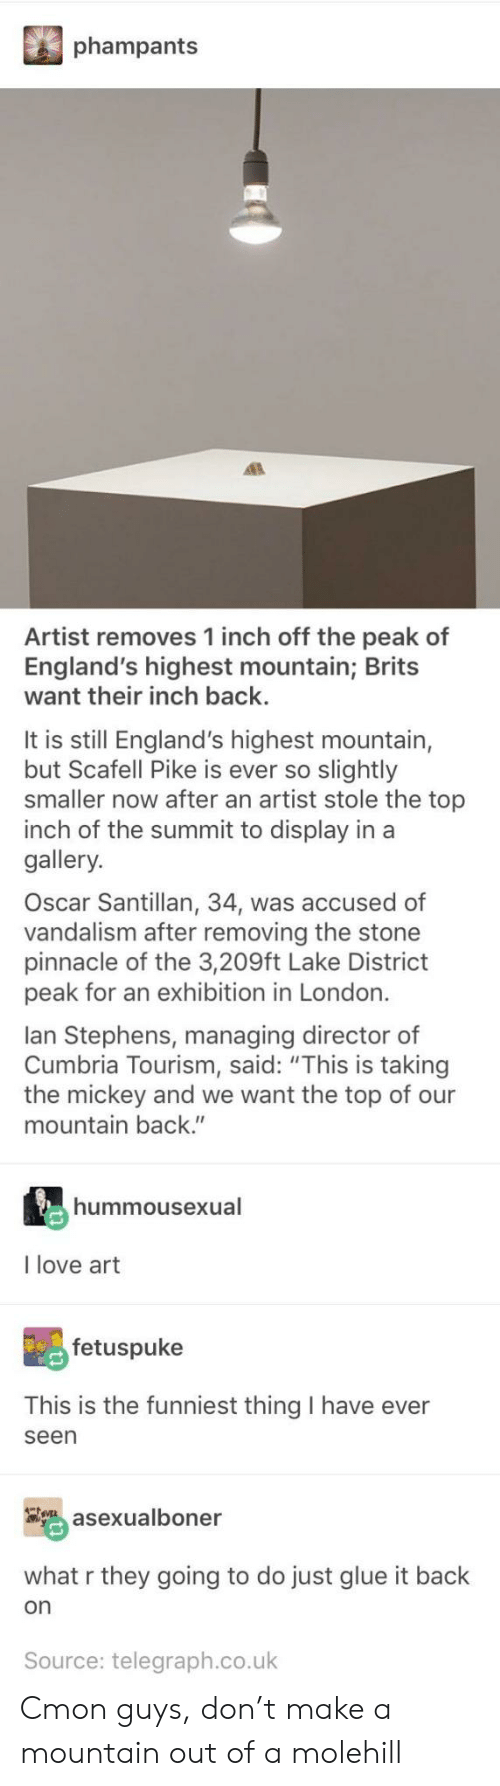 """vandalism: phampants  Artist removes 1 inch off the peak of  England's highest mountain; Brits  want their inch back.  It is still England's highest mountain,  but Scafell Pike is ever so slightly  smaller now after an artist stole the top  inch of the summit to display in a  gallery.  Oscar Santillan, 34, was accused of  vandalism after removing the stone  pinnacle of the 3,209ft Lake District  peak for an exhibition in London.  lan Stephens, managing director of  Cumbria Tourism, said: """"This is taking  the mickey and we want the top of our  mountain back.""""  hummousexual  I love art  fetuspuke  This is the funniest thing I have ever  seen  asexualboner  what r they going to do just glue it back  on  Source: telegraph.co.uk Cmon guys, don't make a mountain out of a molehill"""